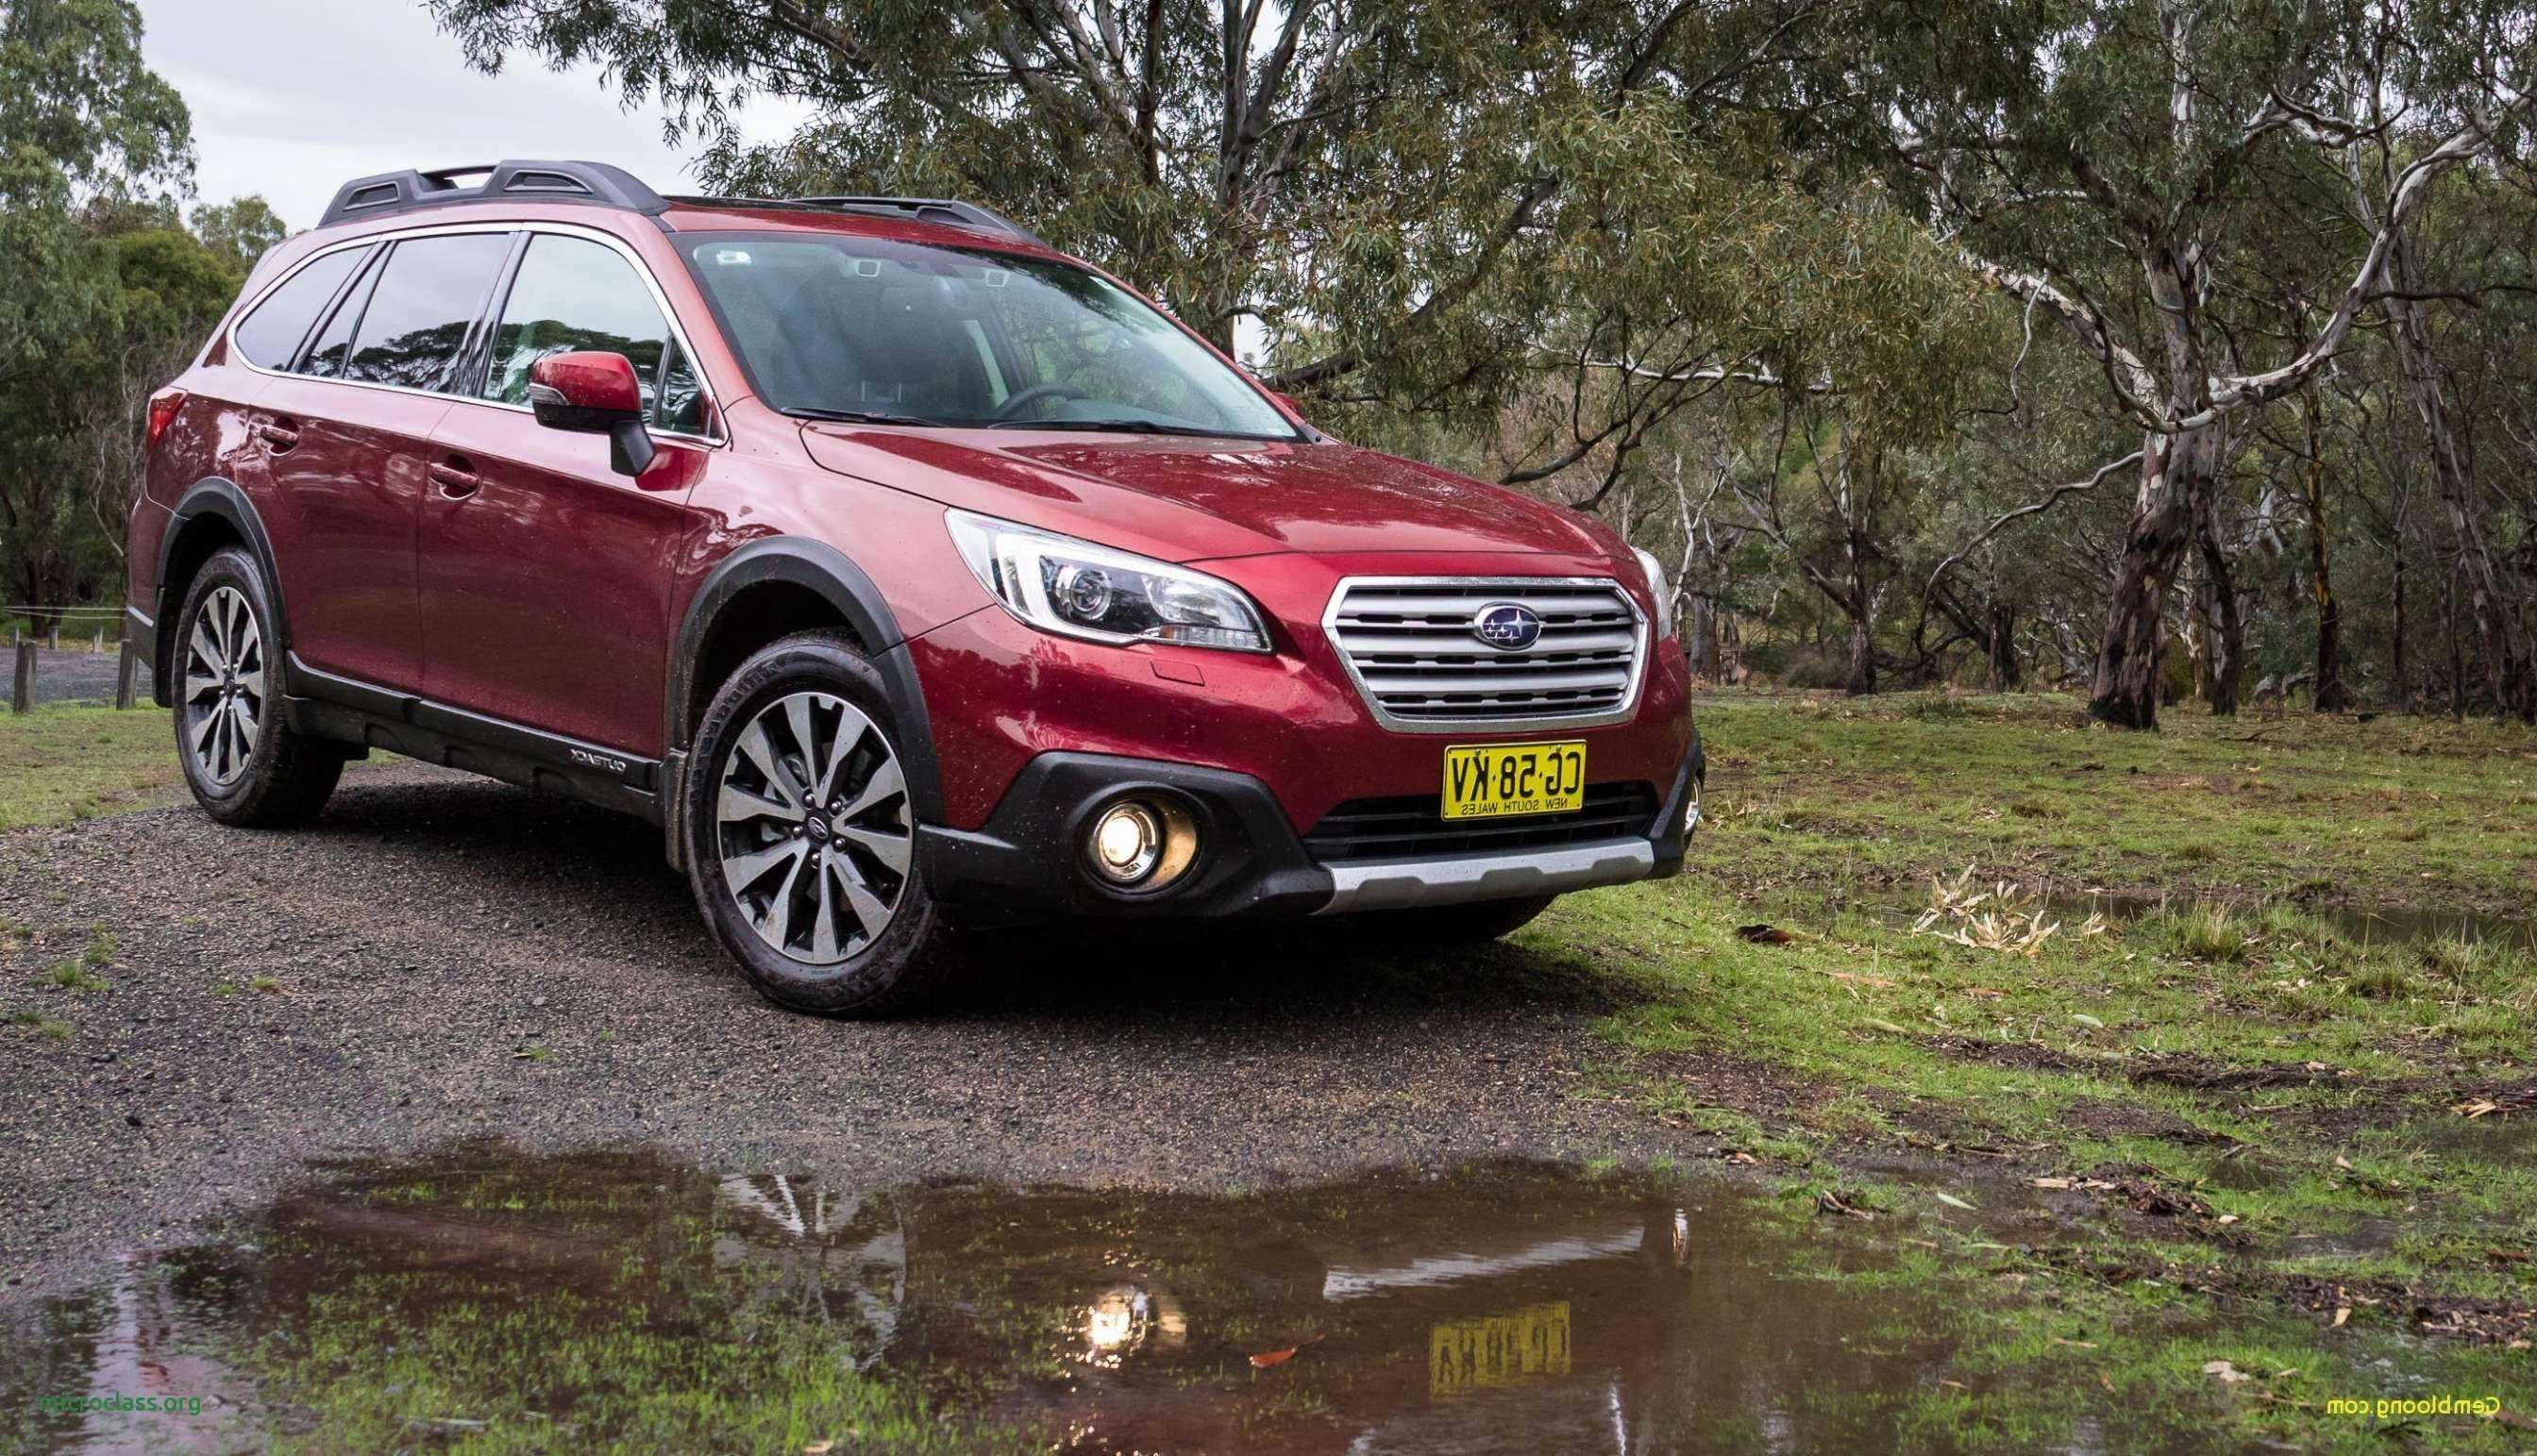 21 Gallery of Subaru Colors 2020 Price and Review by Subaru Colors 2020